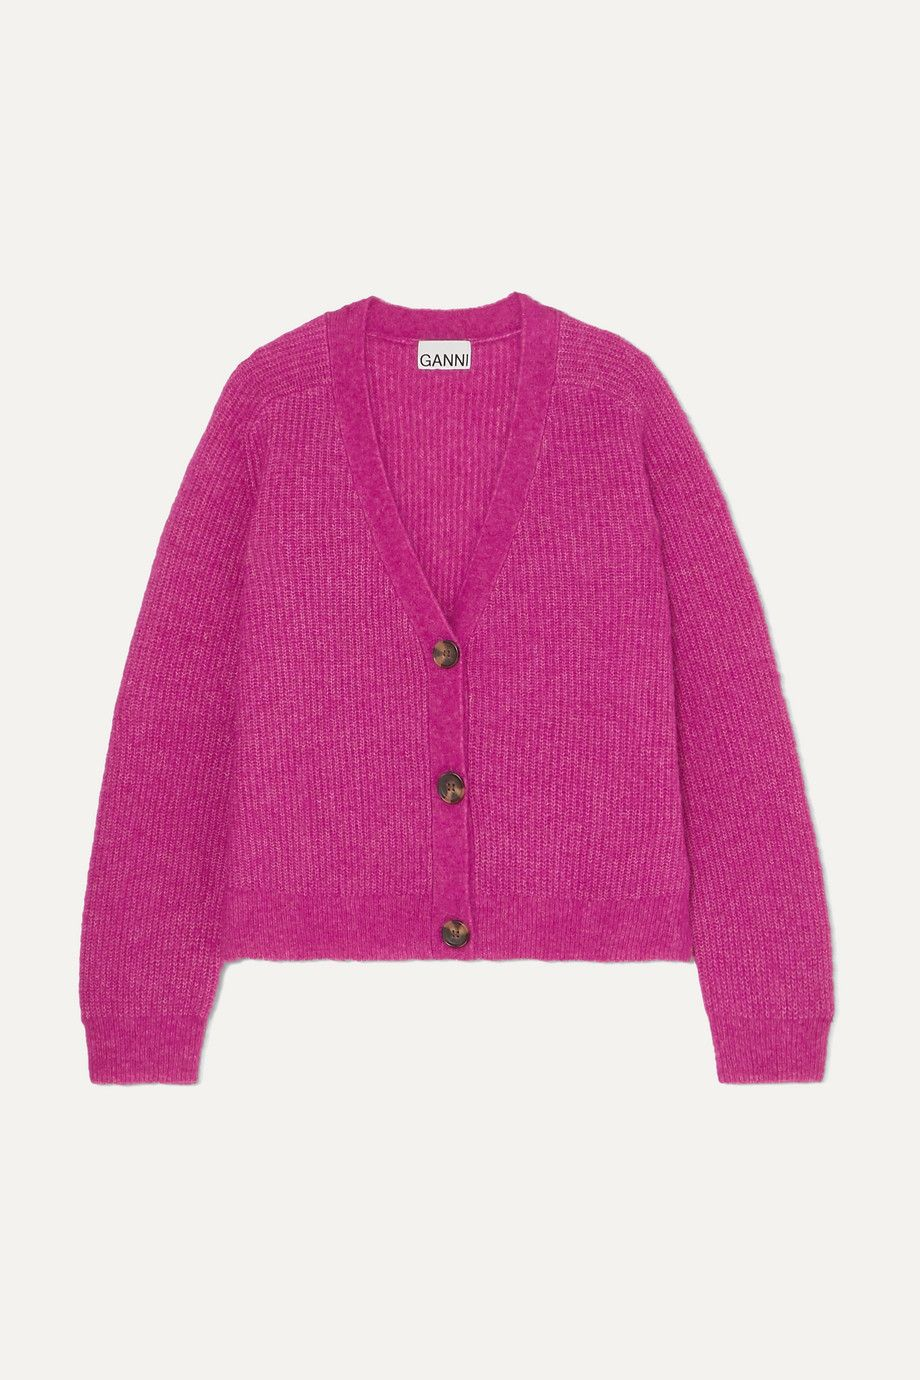 ganni-ribbed-knit-cardigan